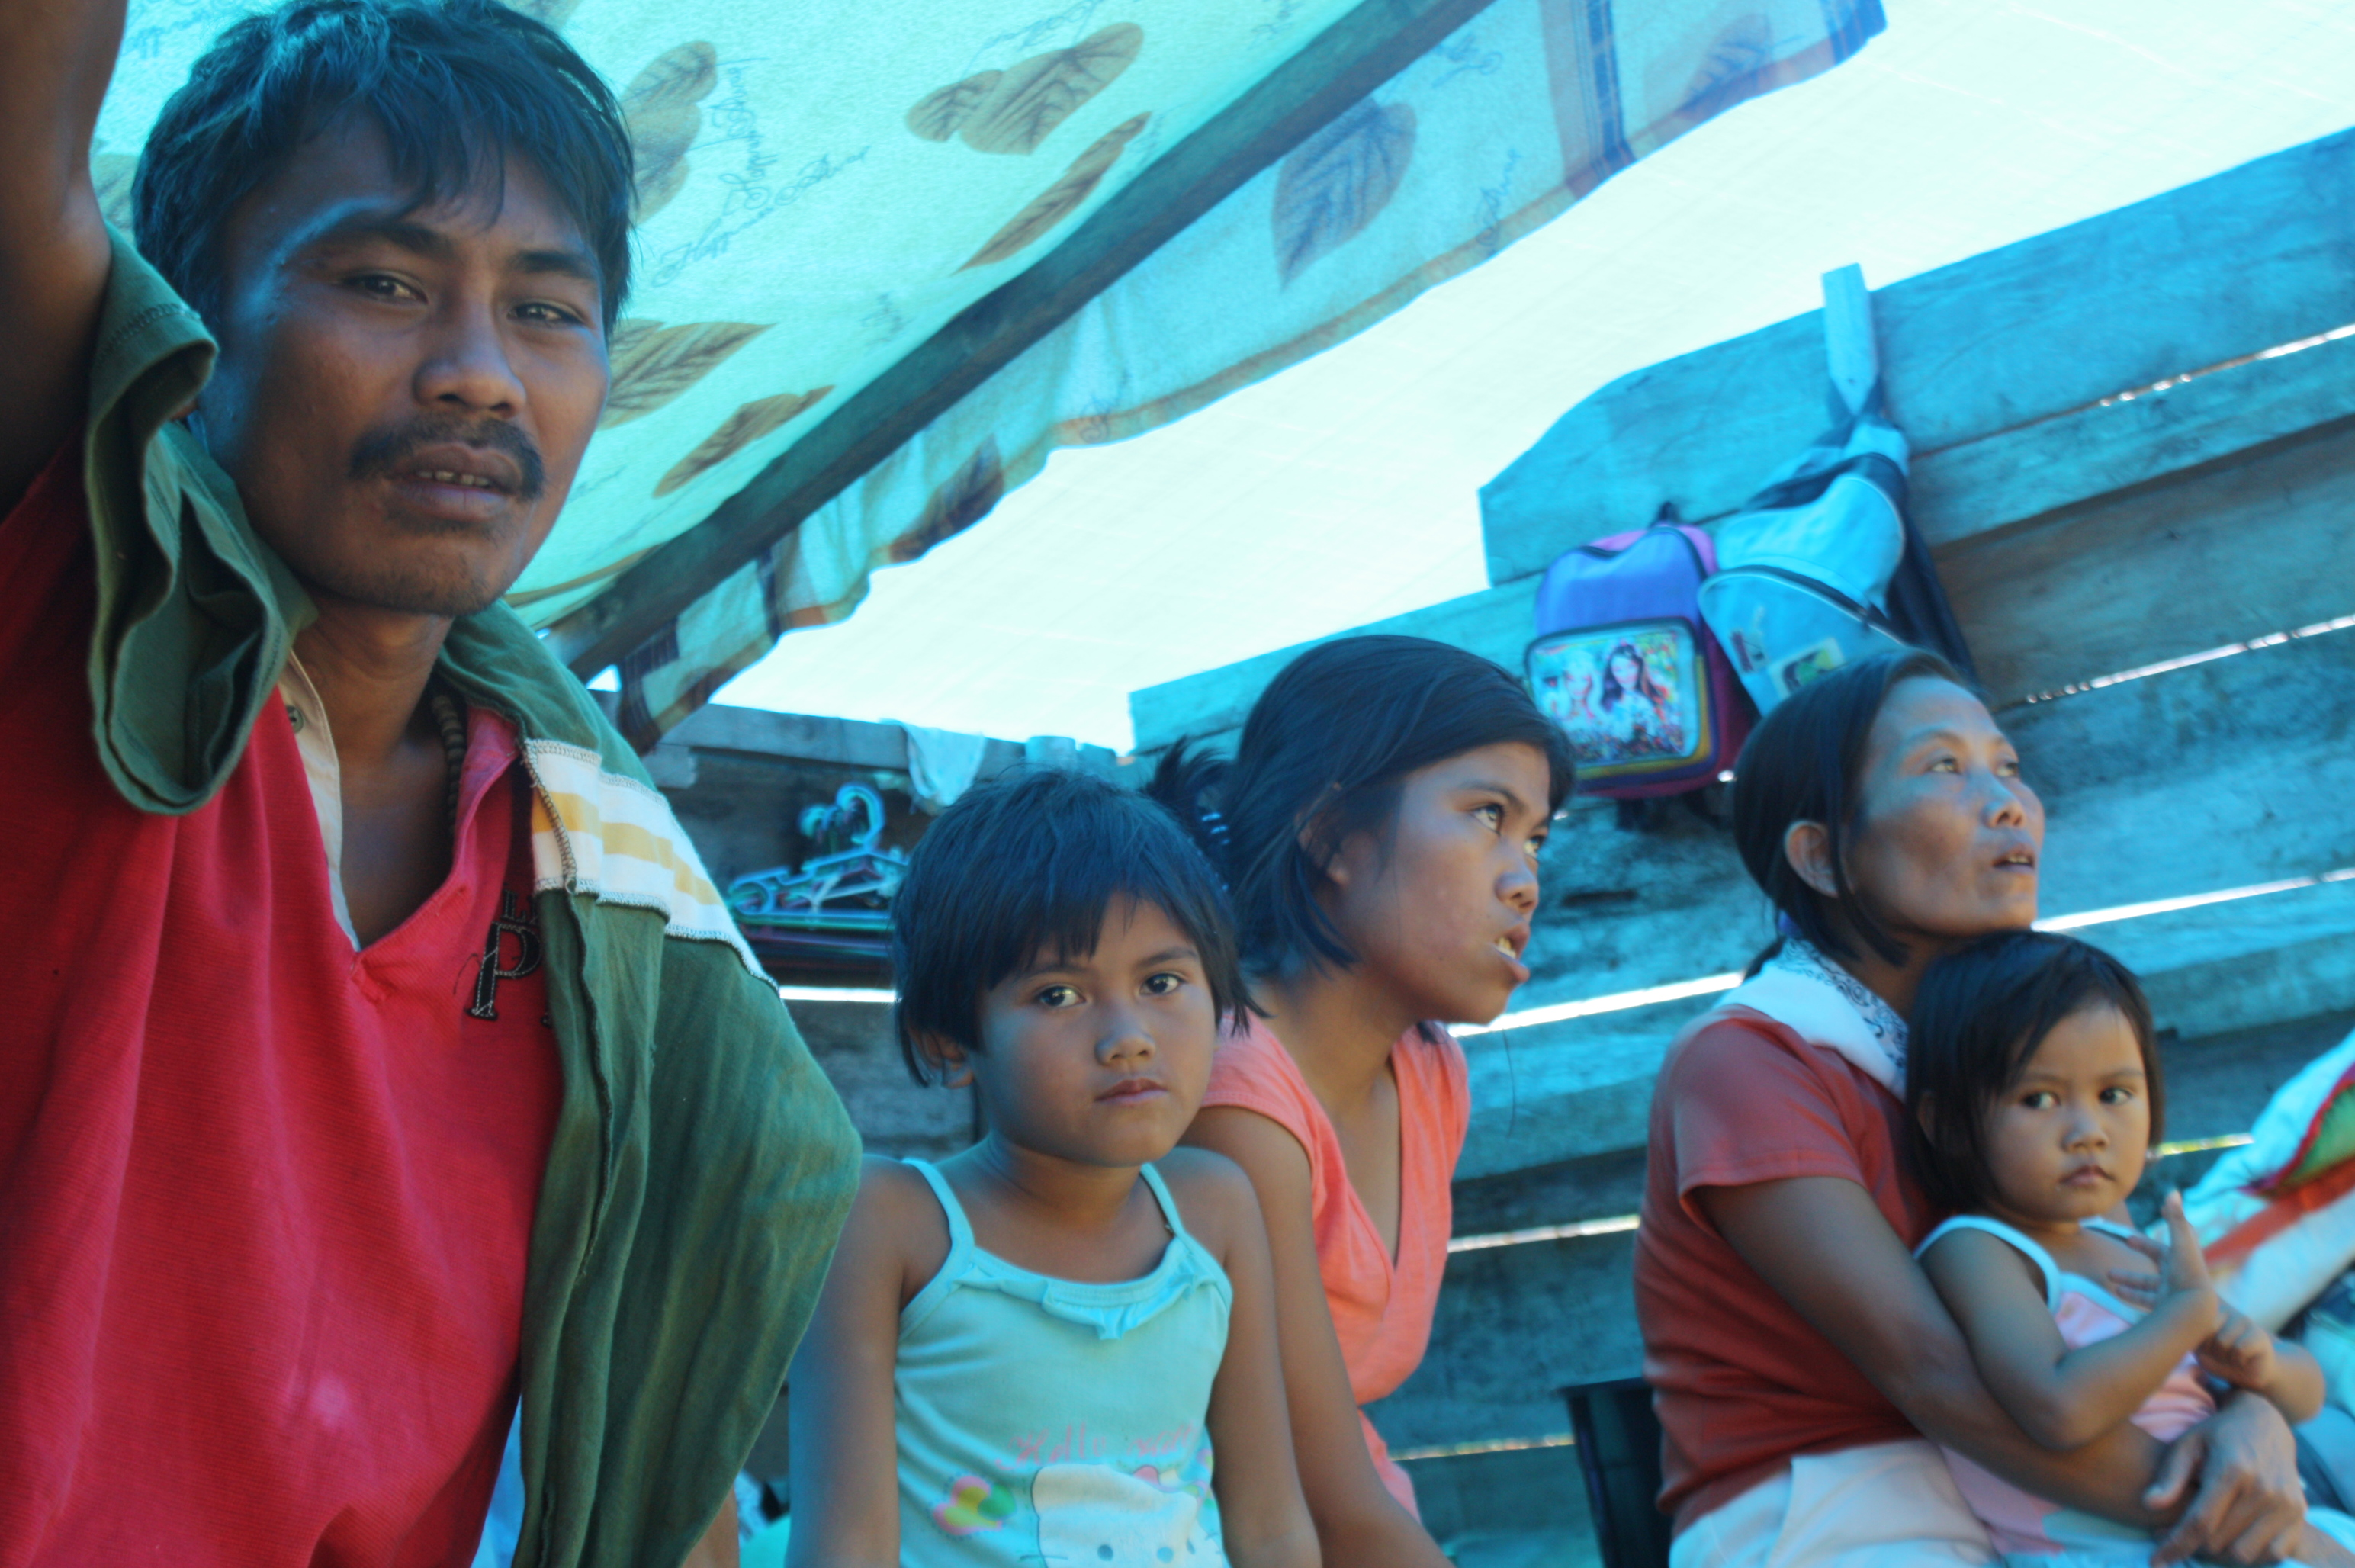 Families in Panansalan, a barangay hit by Typhoon Bopha/Pablo on 4 December 2012, continue living in their damaged home two months afterward